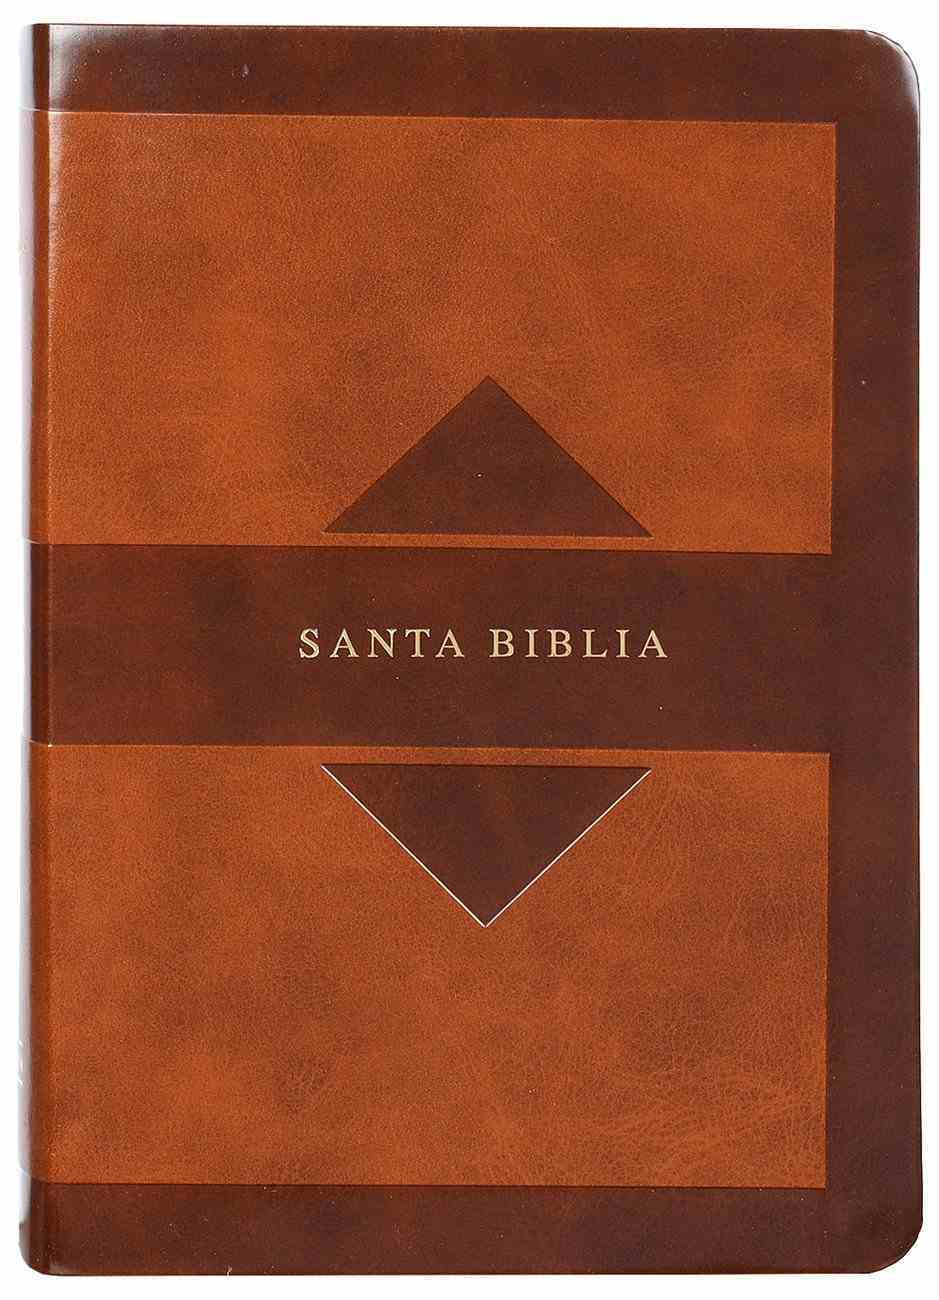 Rvr 1960 Hand Size Giant Print Spanish Bible With Holy Land Images Brown (Red Letter Edition) Imitation Leather